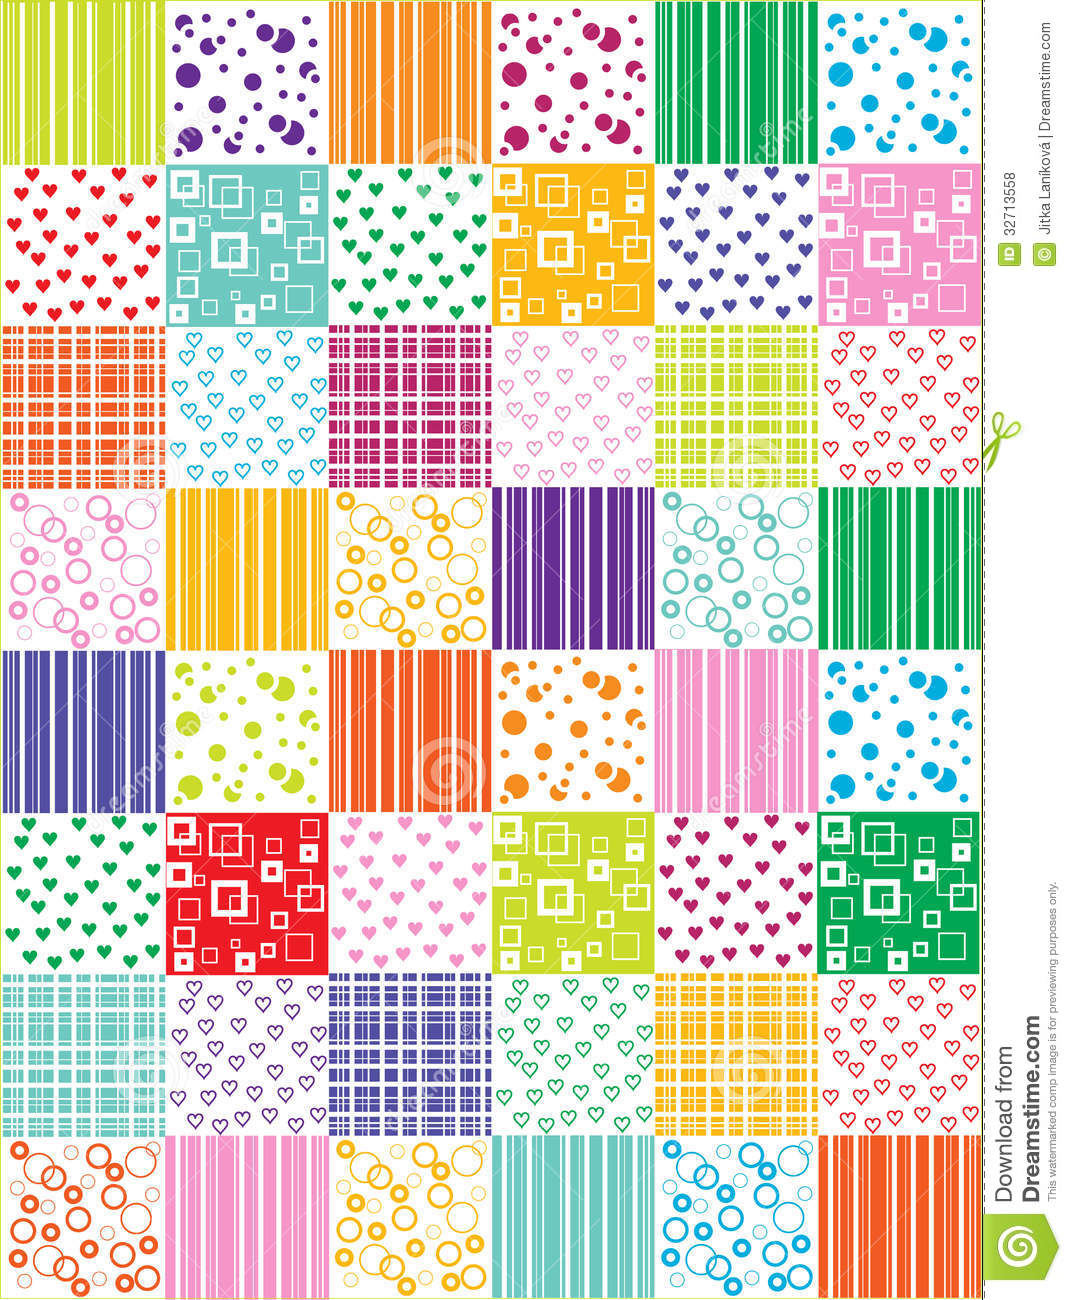 Patchwork clipart colorful Free vintage backgrounds Patchwork Clipart